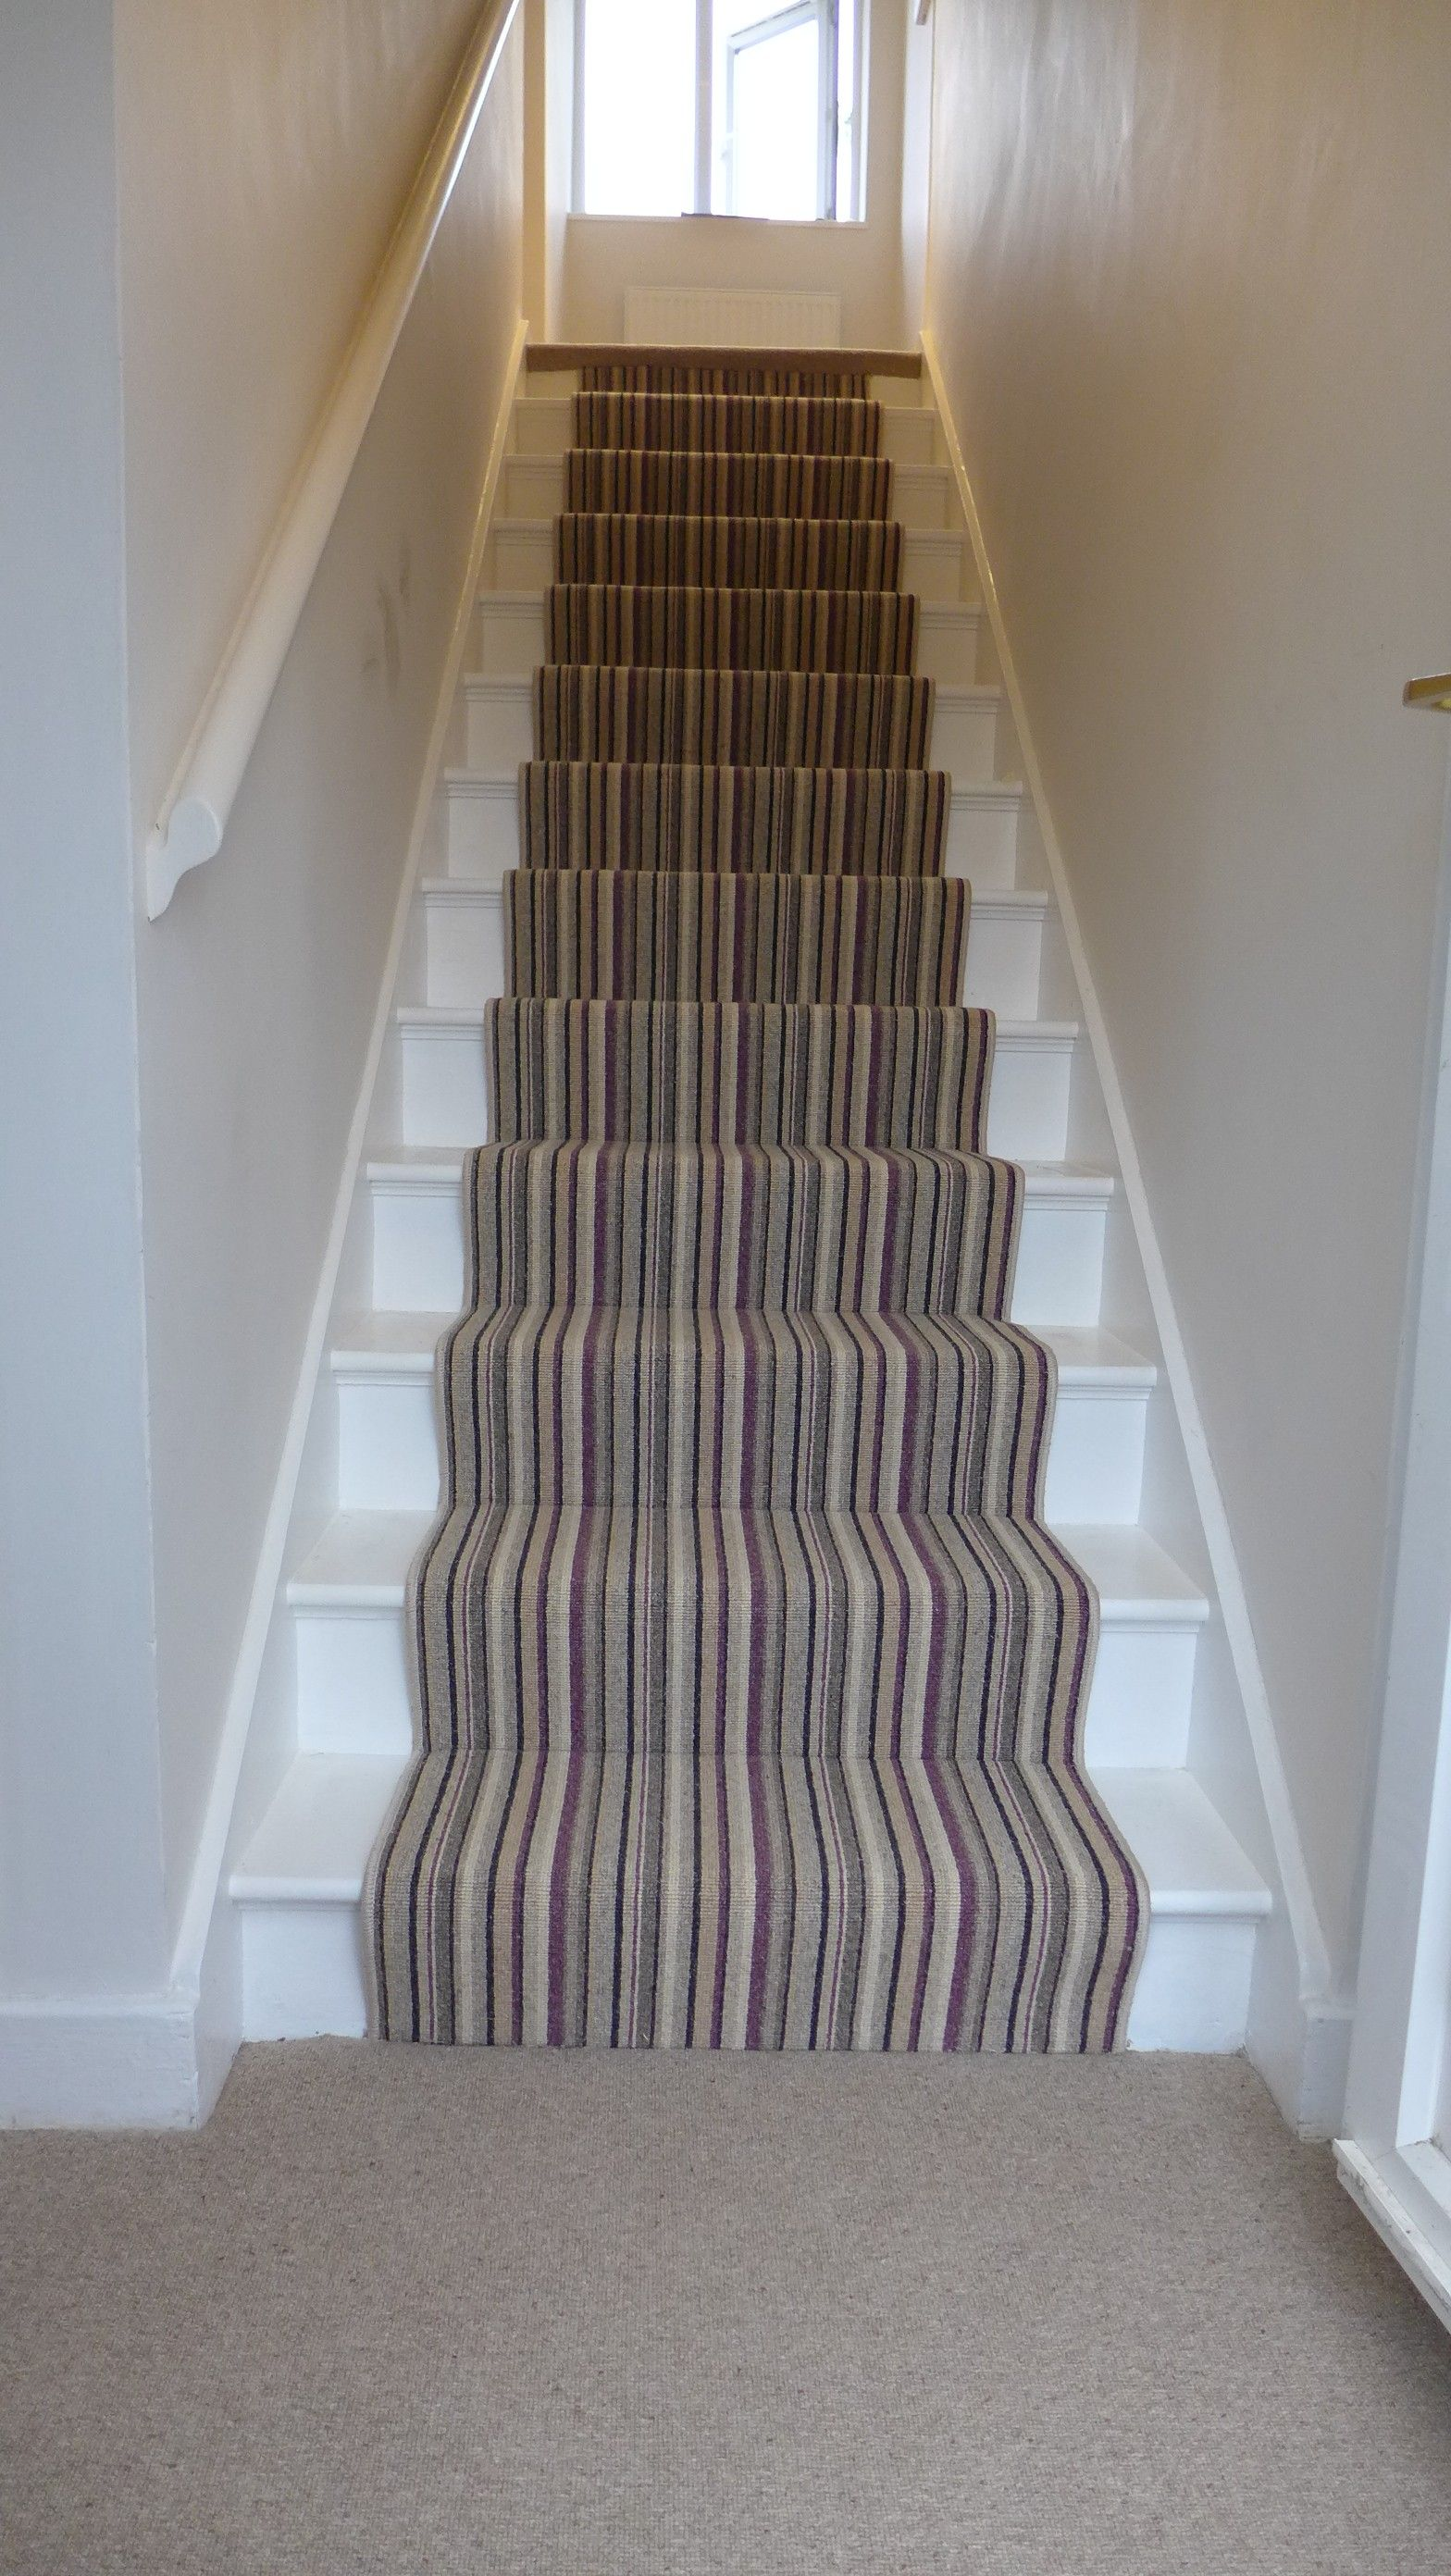 Striped Carpets On Stairs and Landing